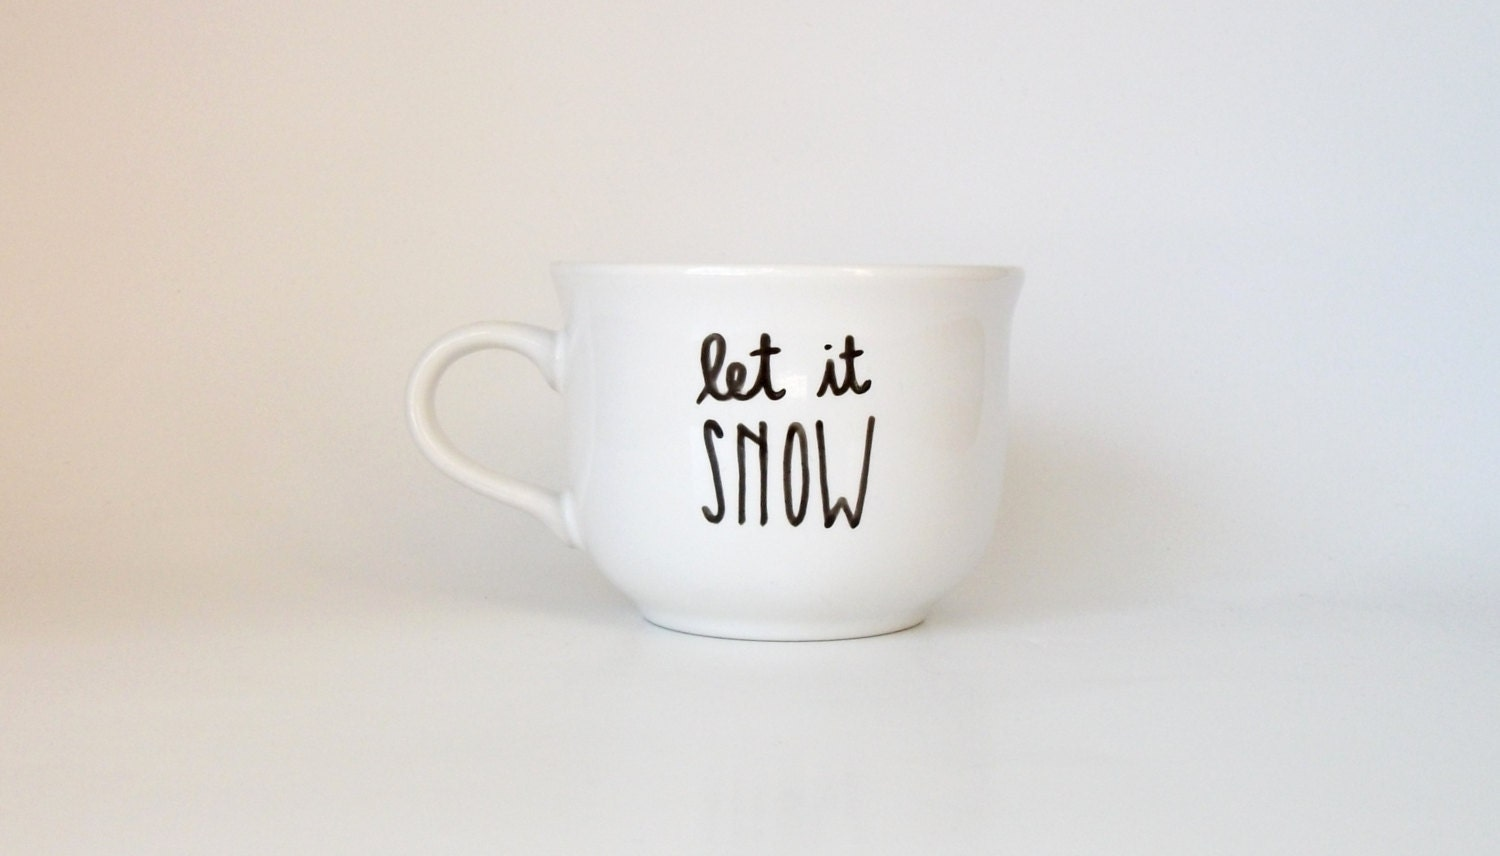 Let It Snow Winter Christmas Quote Hand Illustrated Art Mug 6 oz Dishwasher Safe - Farizula